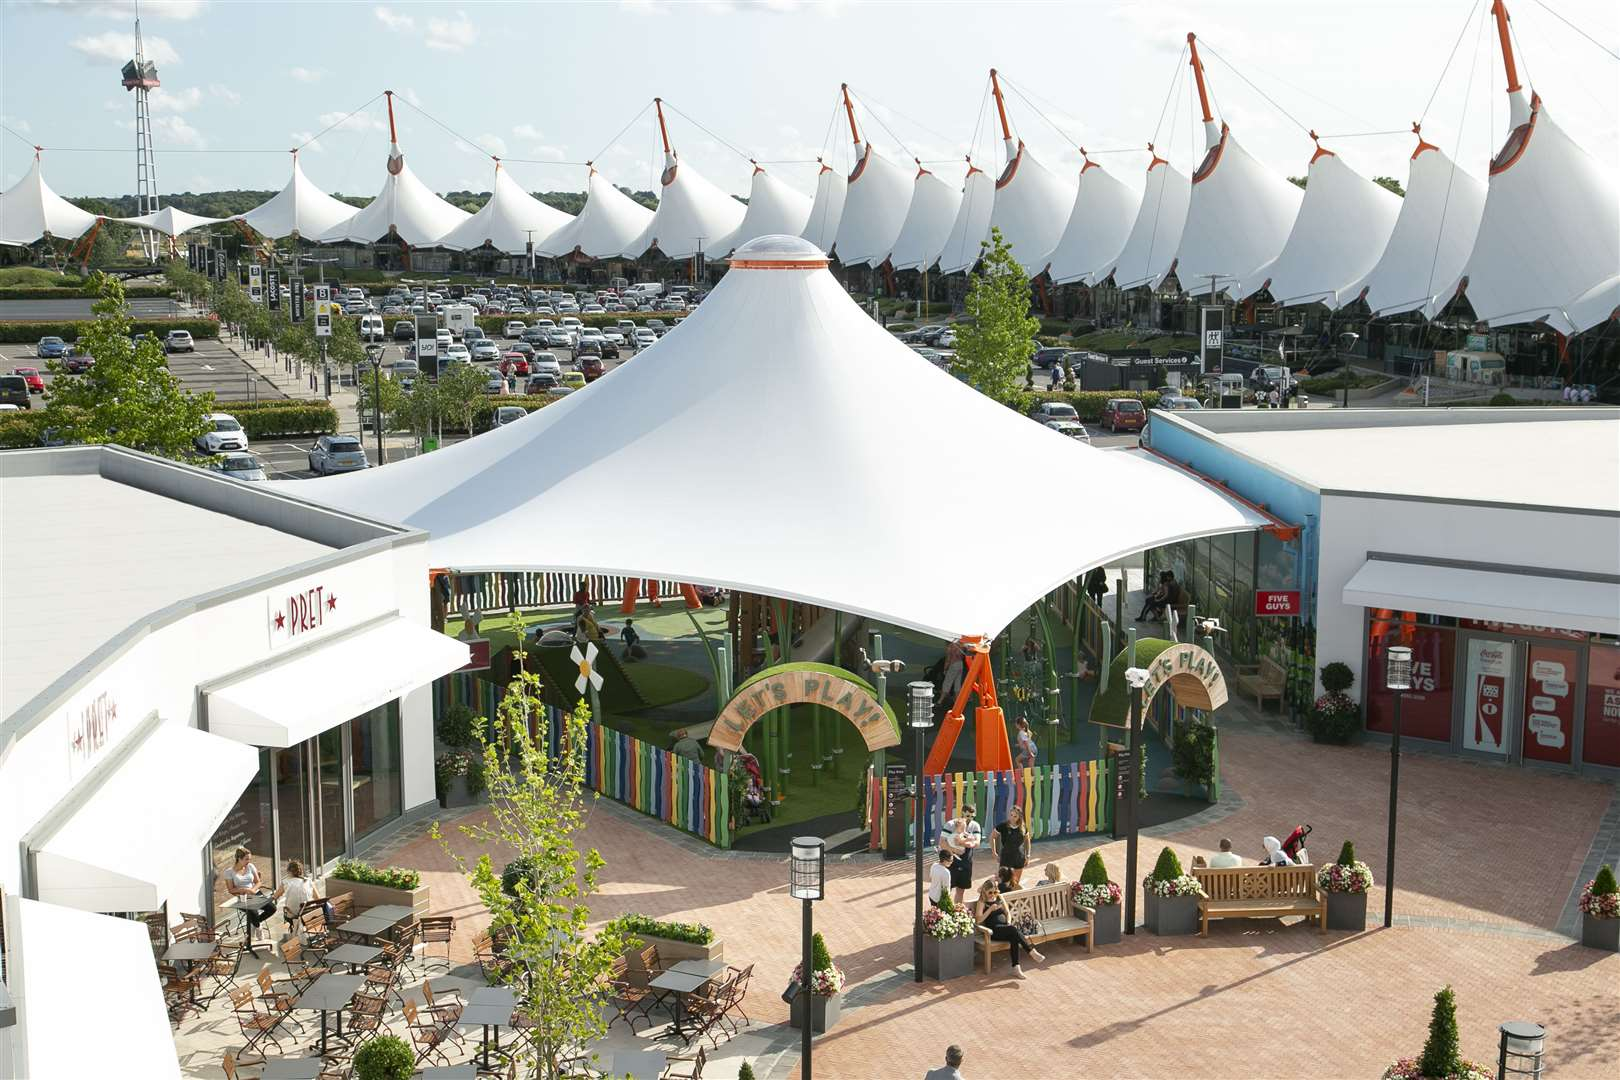 The Ashford Designer Outlet as it looks now